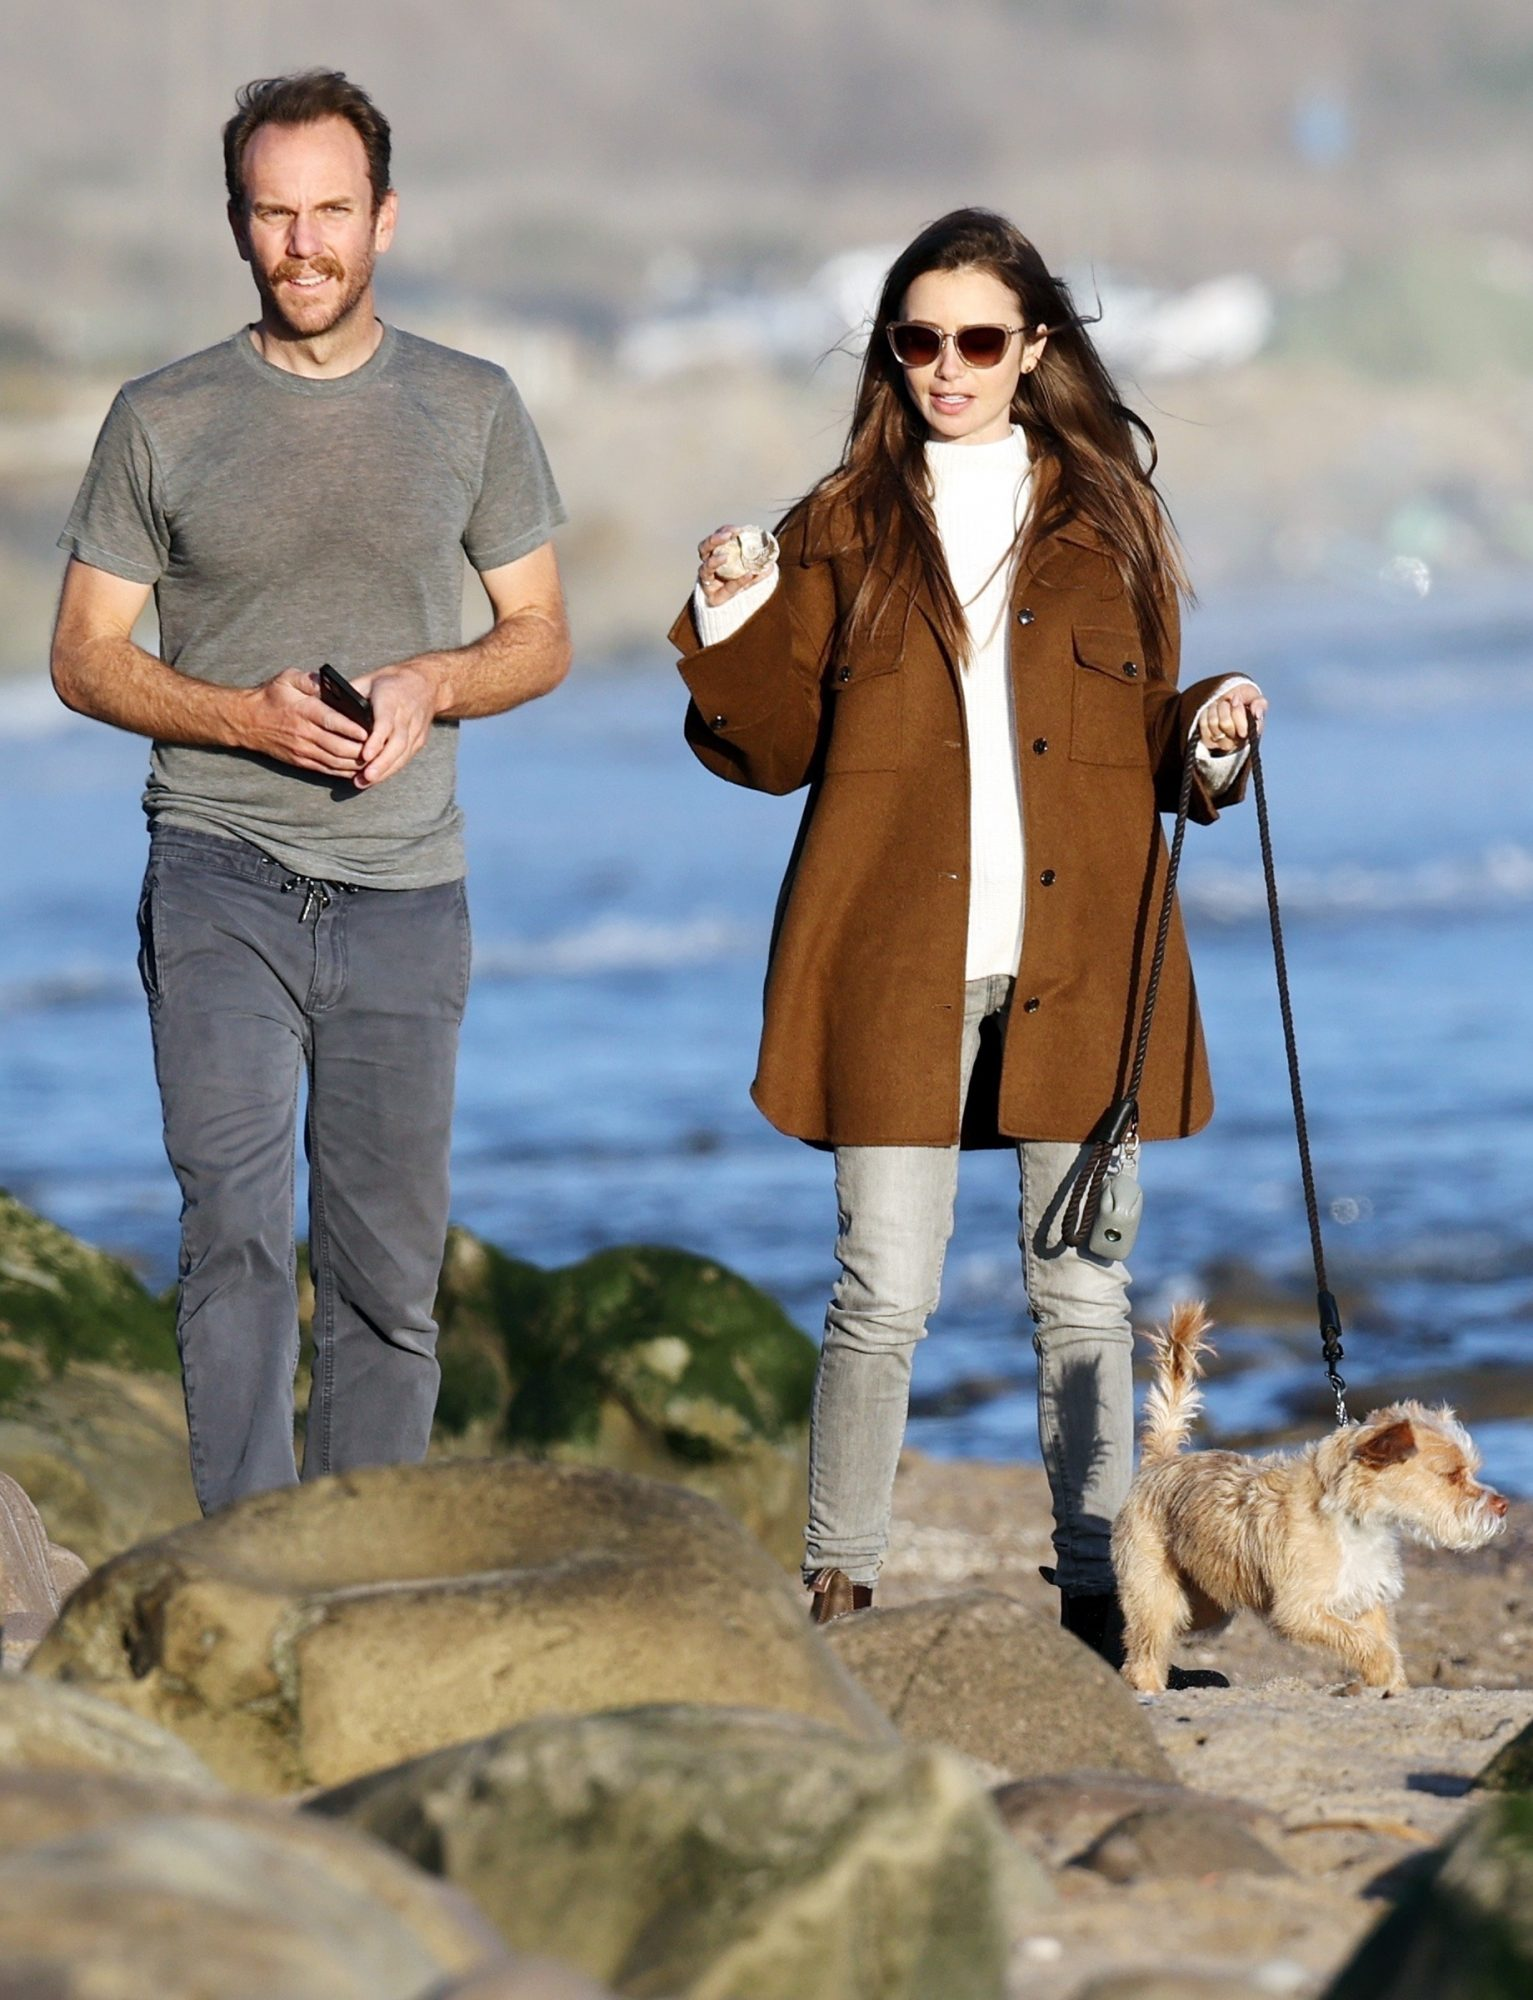 Newly engaged Lily Collins and Charlie McDowell take their dog Redford for a walk on the beach